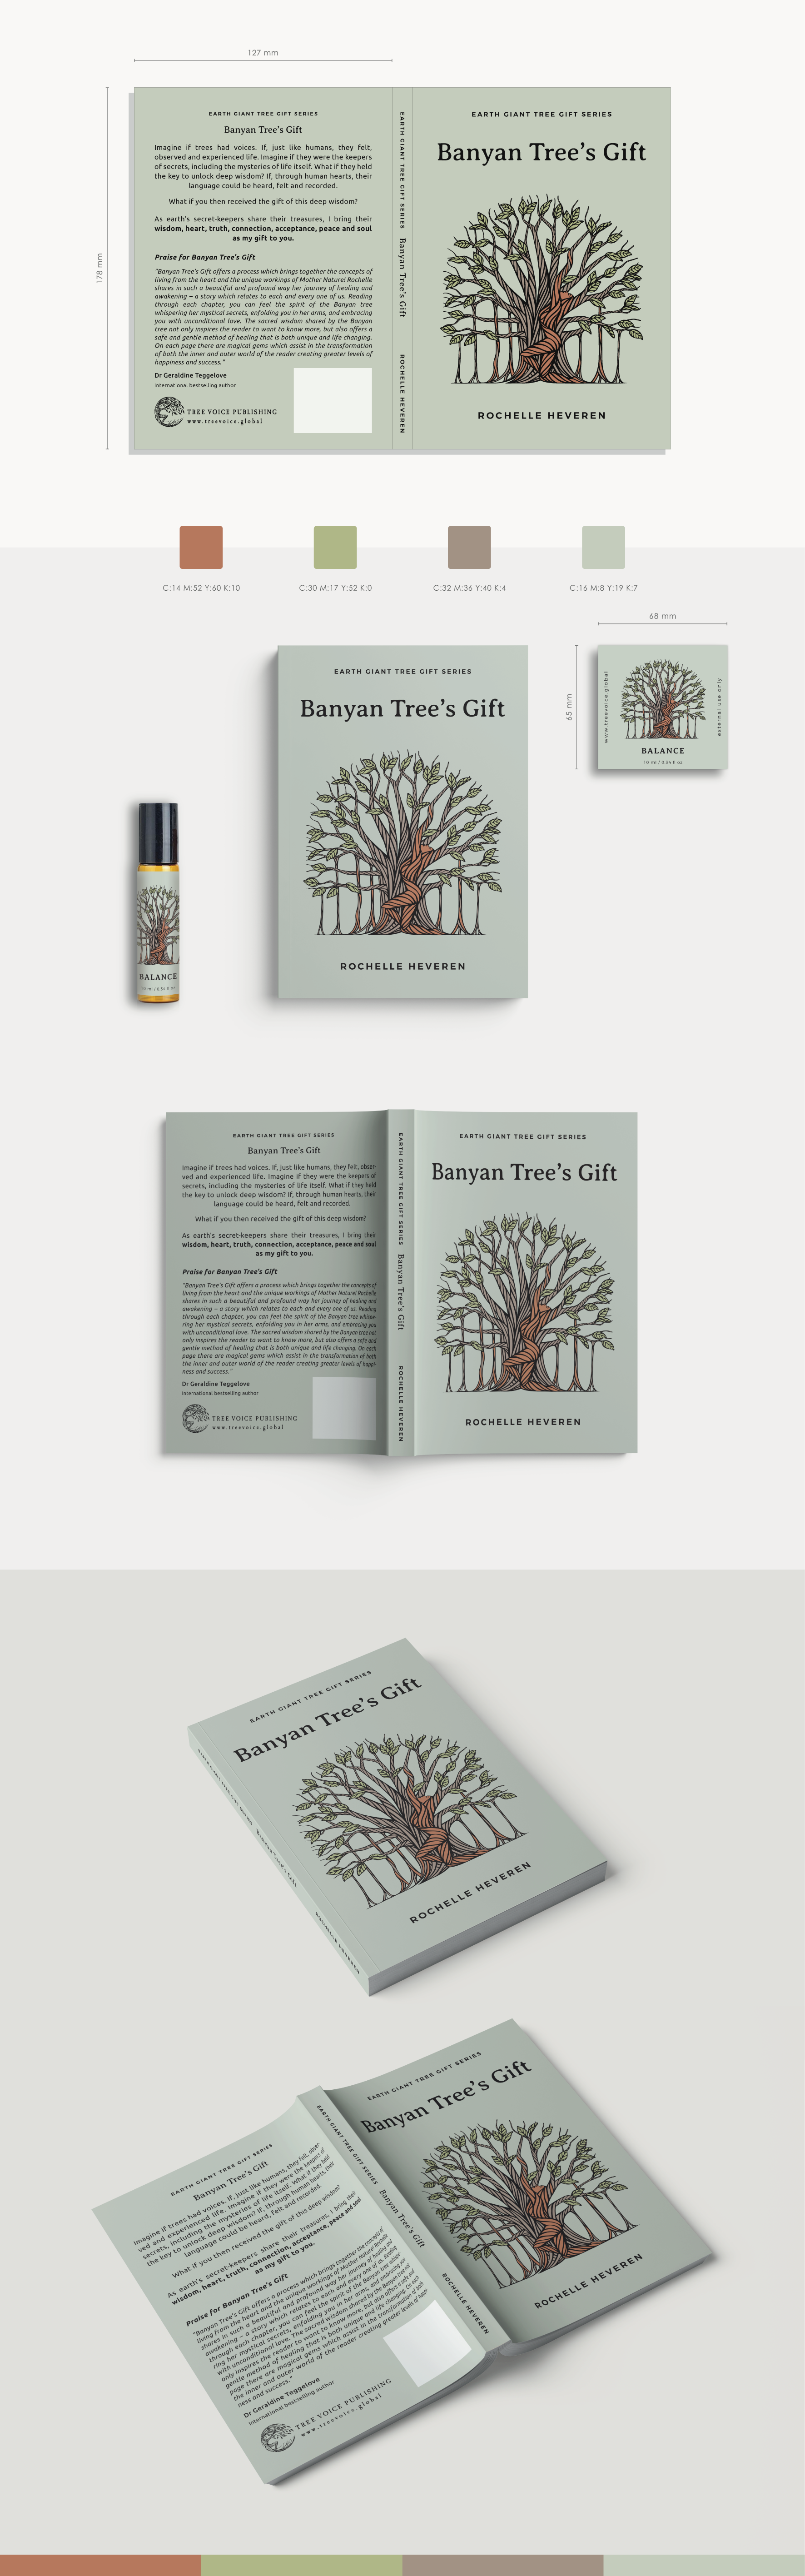 Banyan Tree's Gift - Book Cover and Essential Oil Bottle Sticker